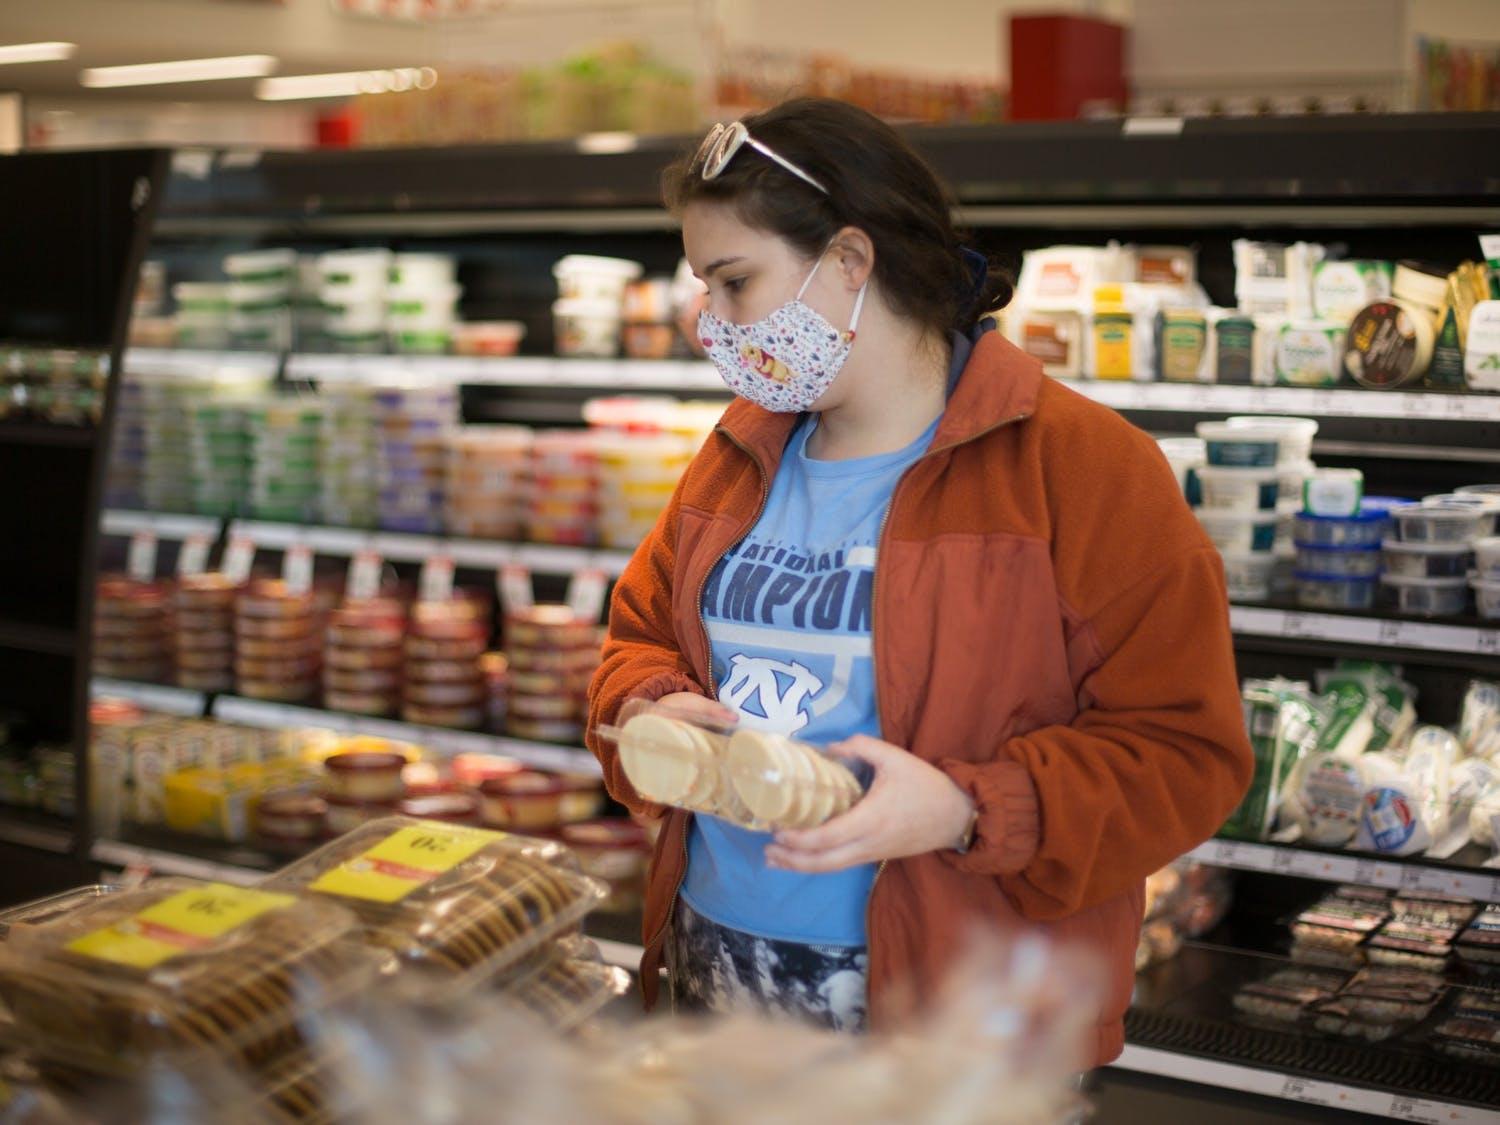 Madison Bennett, a 24-year-old Chapel Hill resident, shops for food at the Target on Franklin Street on Friday, March 19, 2021.